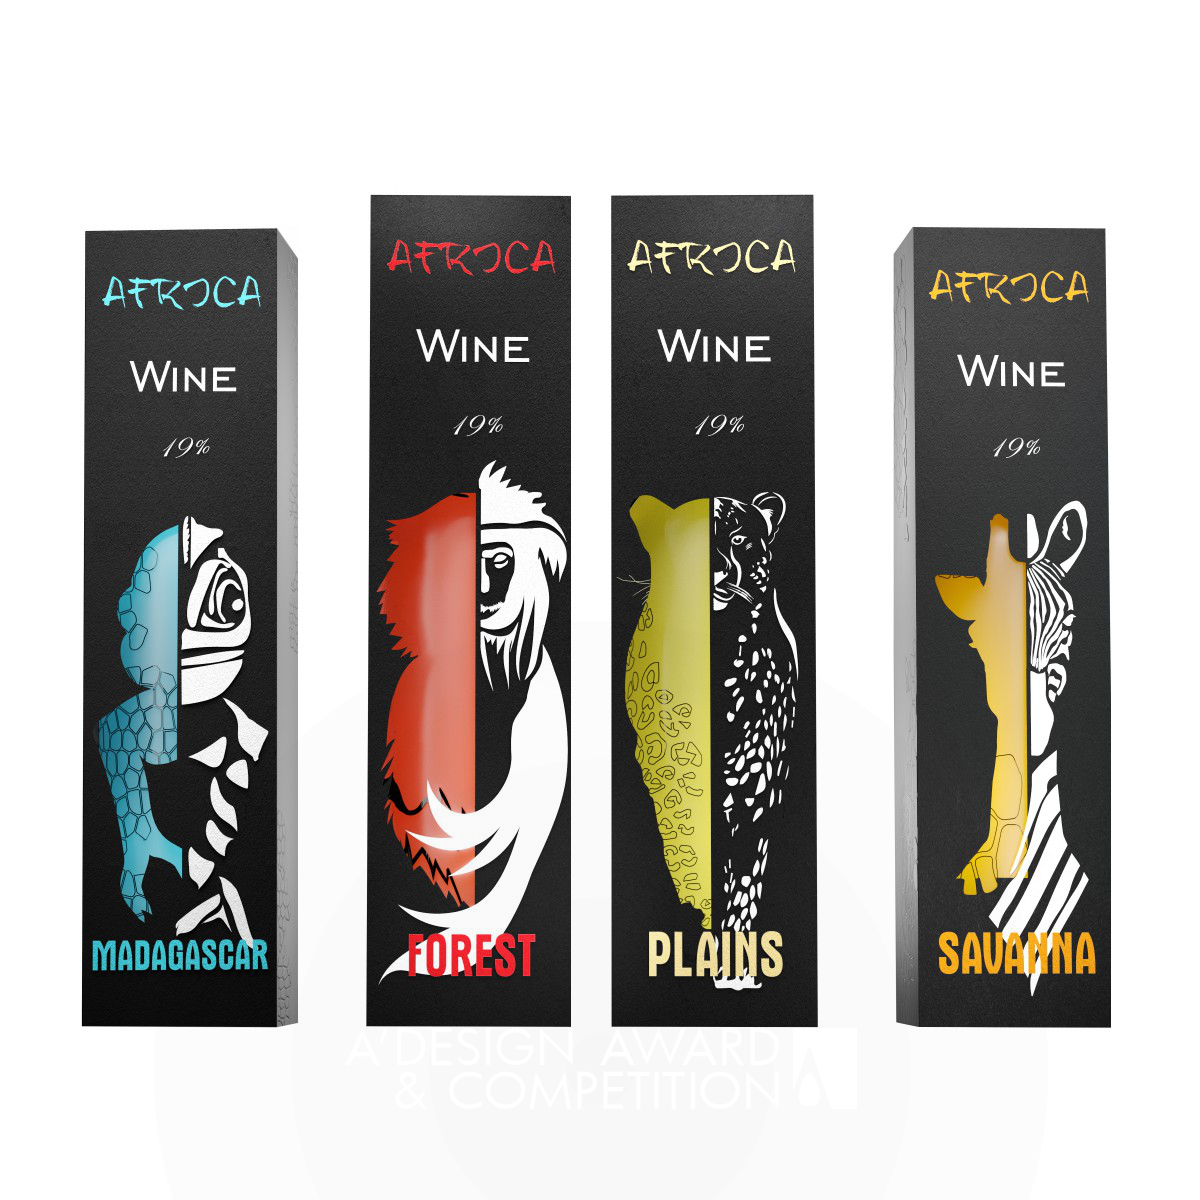 Wine Africa Limited Edition